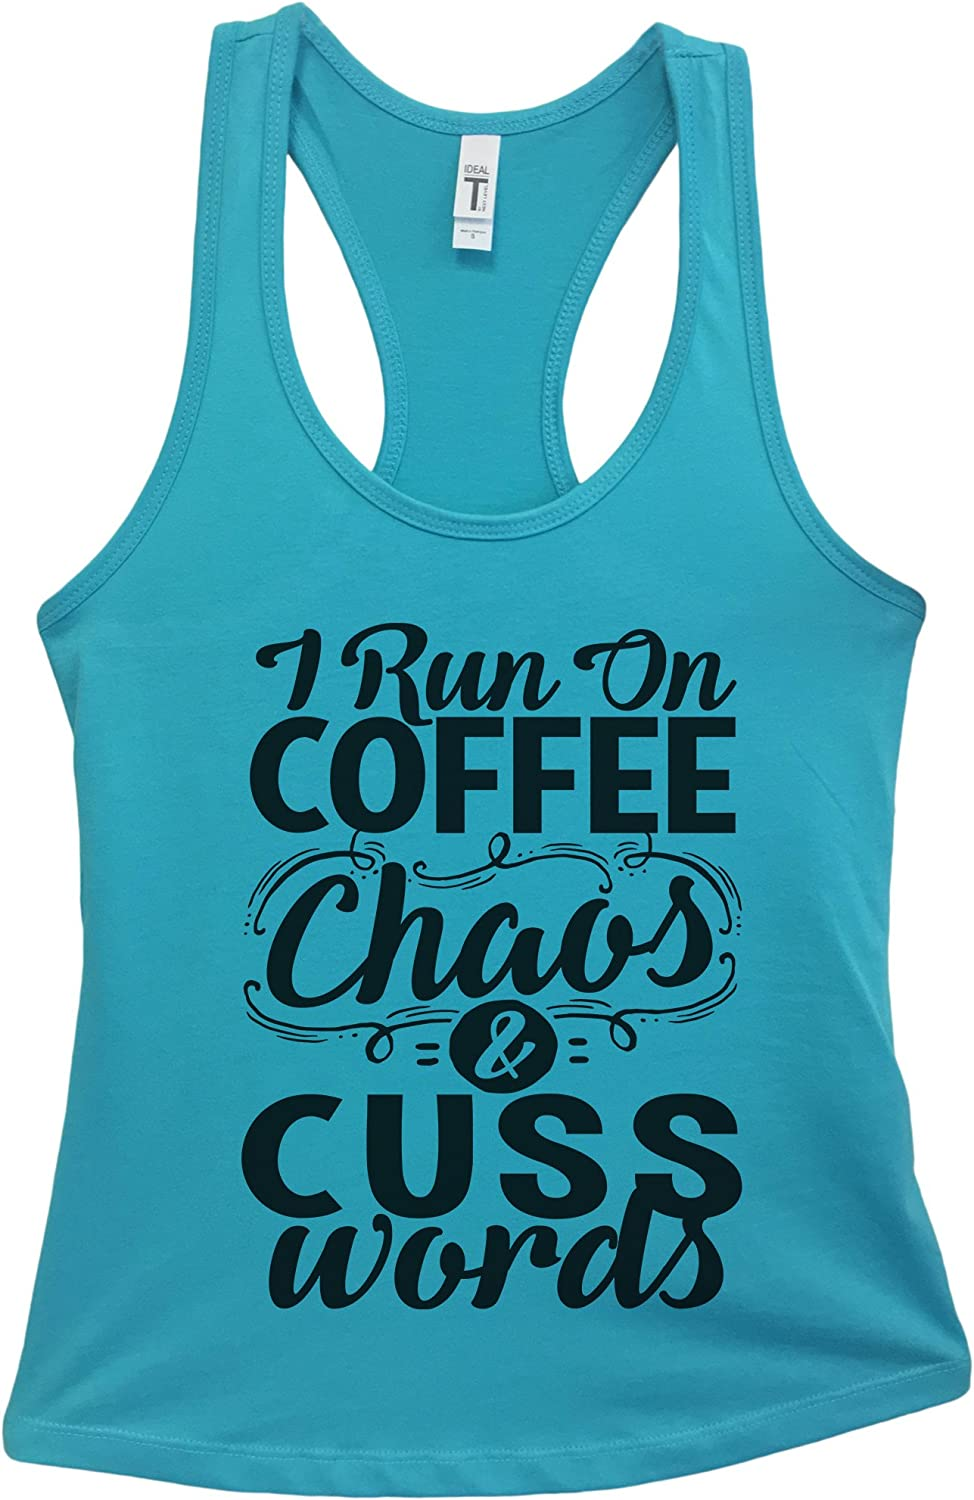 Coffee curves and cuss words thats what I/'m made of racerback tank summer tank tops funny tank